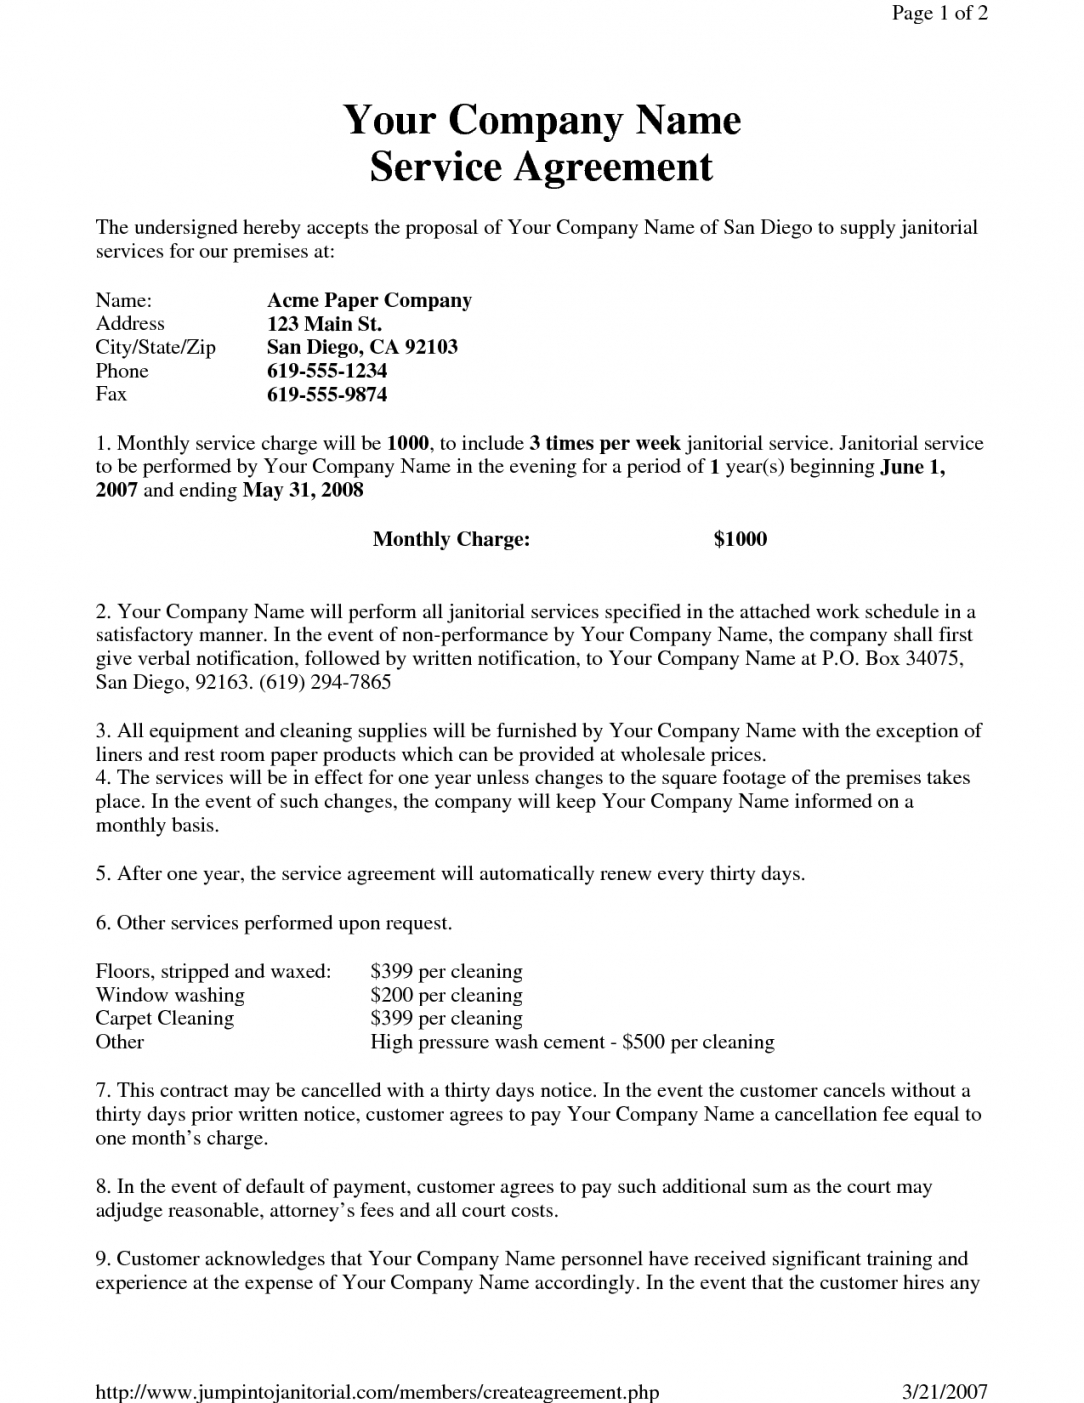 our janitorial service agreement by hgh19249  sample janitorial janitorial contract agreement